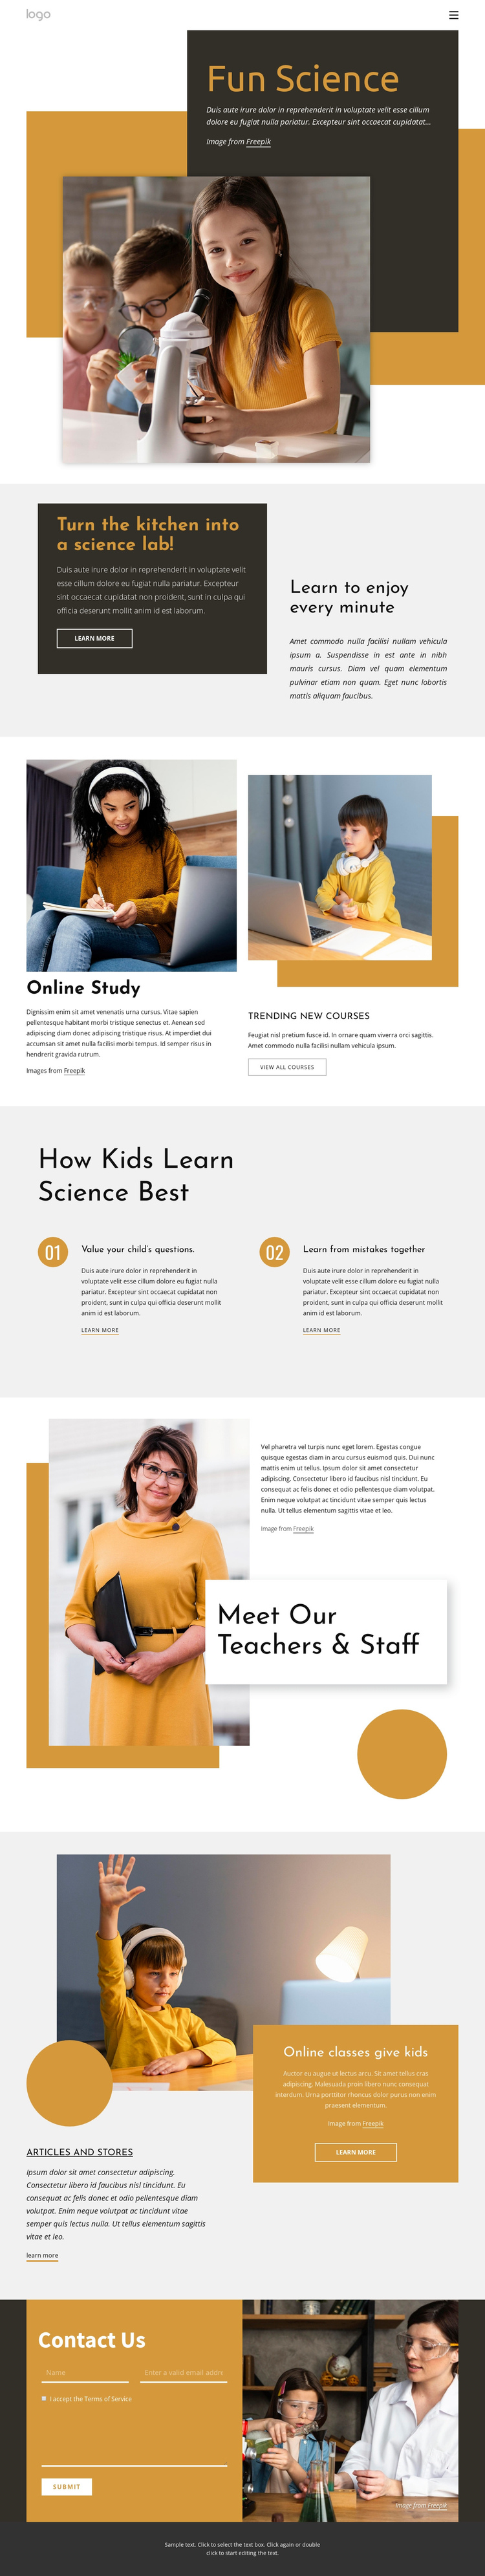 Cool science project Website Builder Software